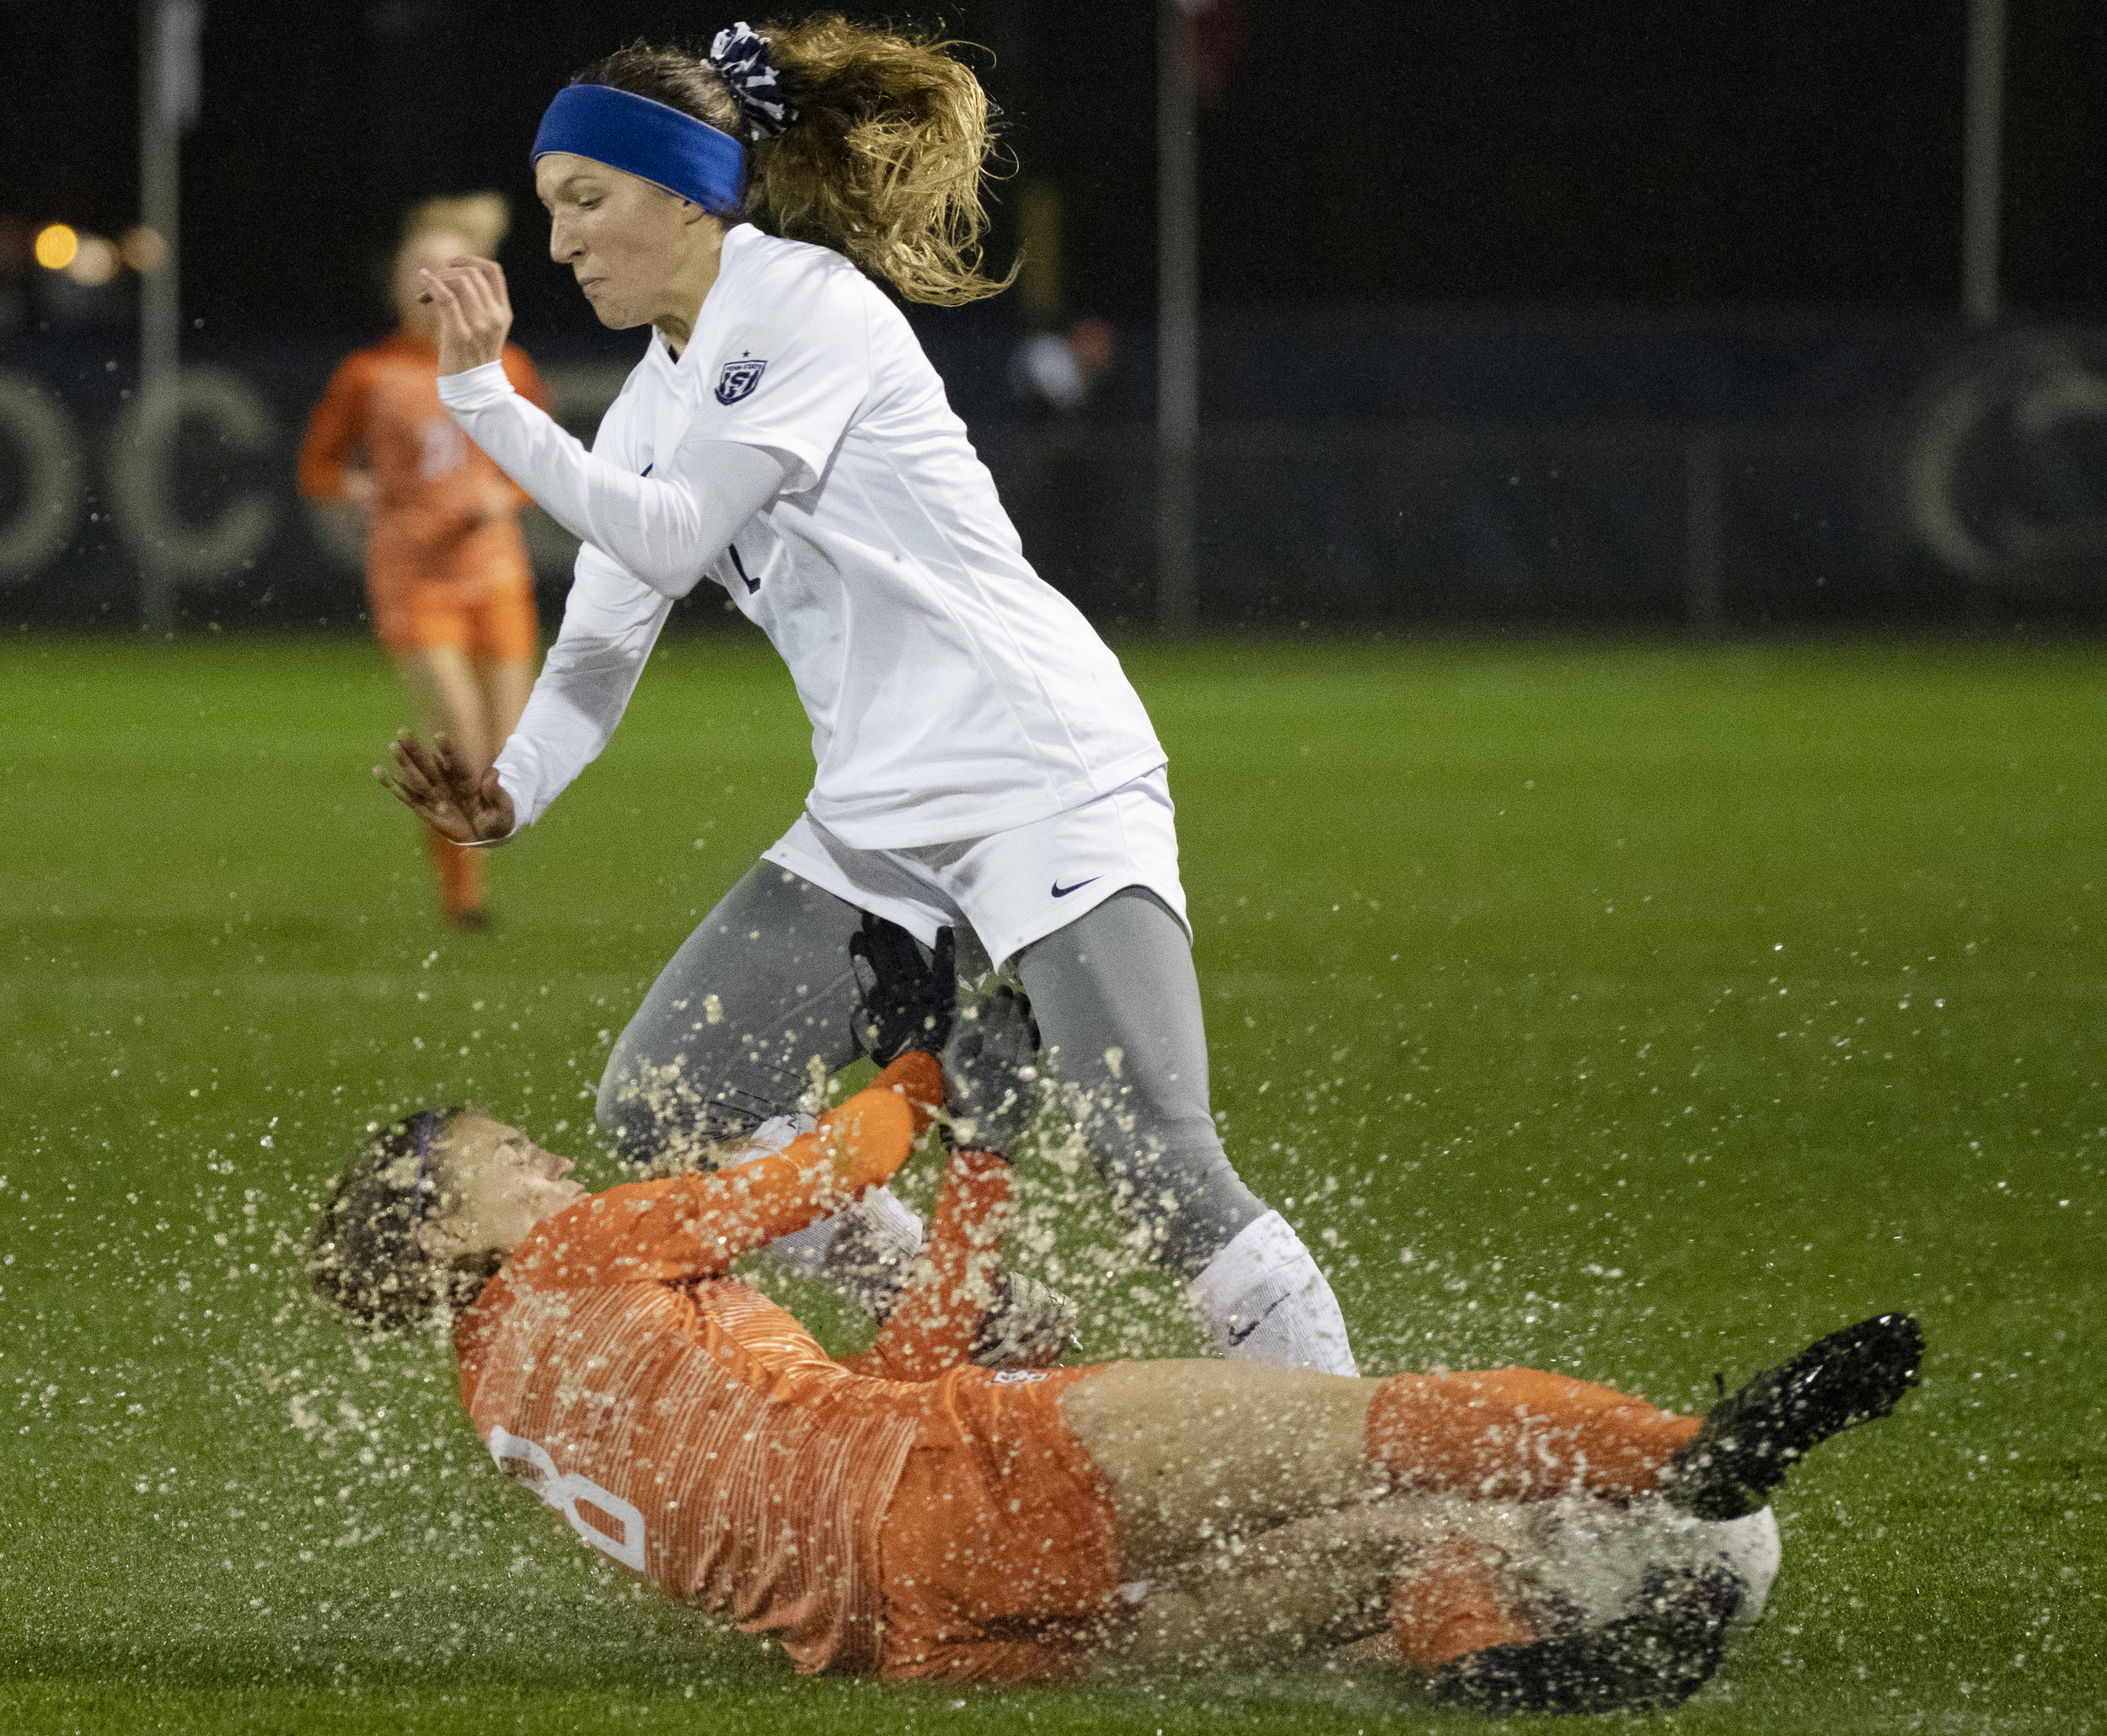 Forward Kerry Abello (2) get tackled during the NCAA tournament first round game against Bowling Green at Jeffrey Field on Friday, Nov. 9, 2018. The Nittany Lions defeat Bowling Green 4-1 and advance to the second round of the NCAA Tournament. | Photo by: Noah Riffe